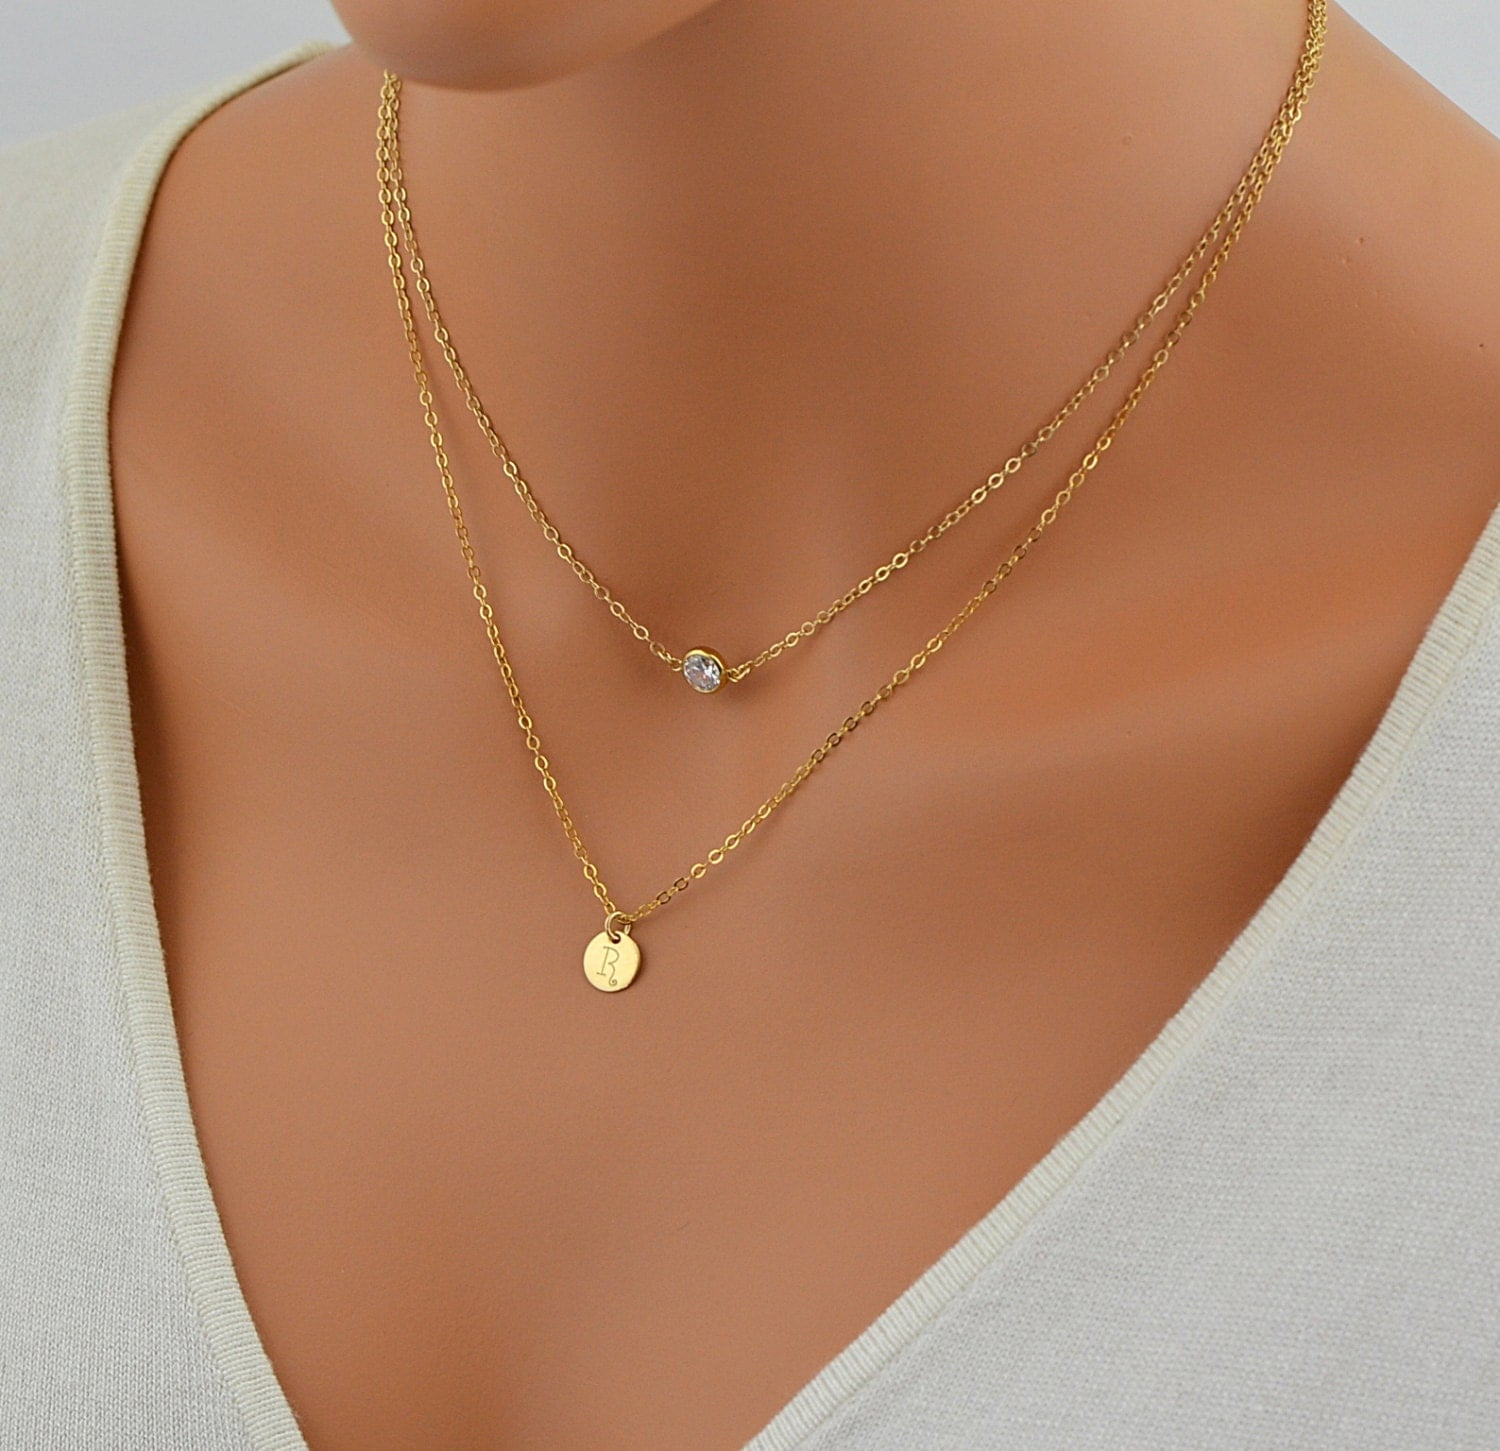 tiny initial disc necklace layered gold necklace cz necklace. Black Bedroom Furniture Sets. Home Design Ideas